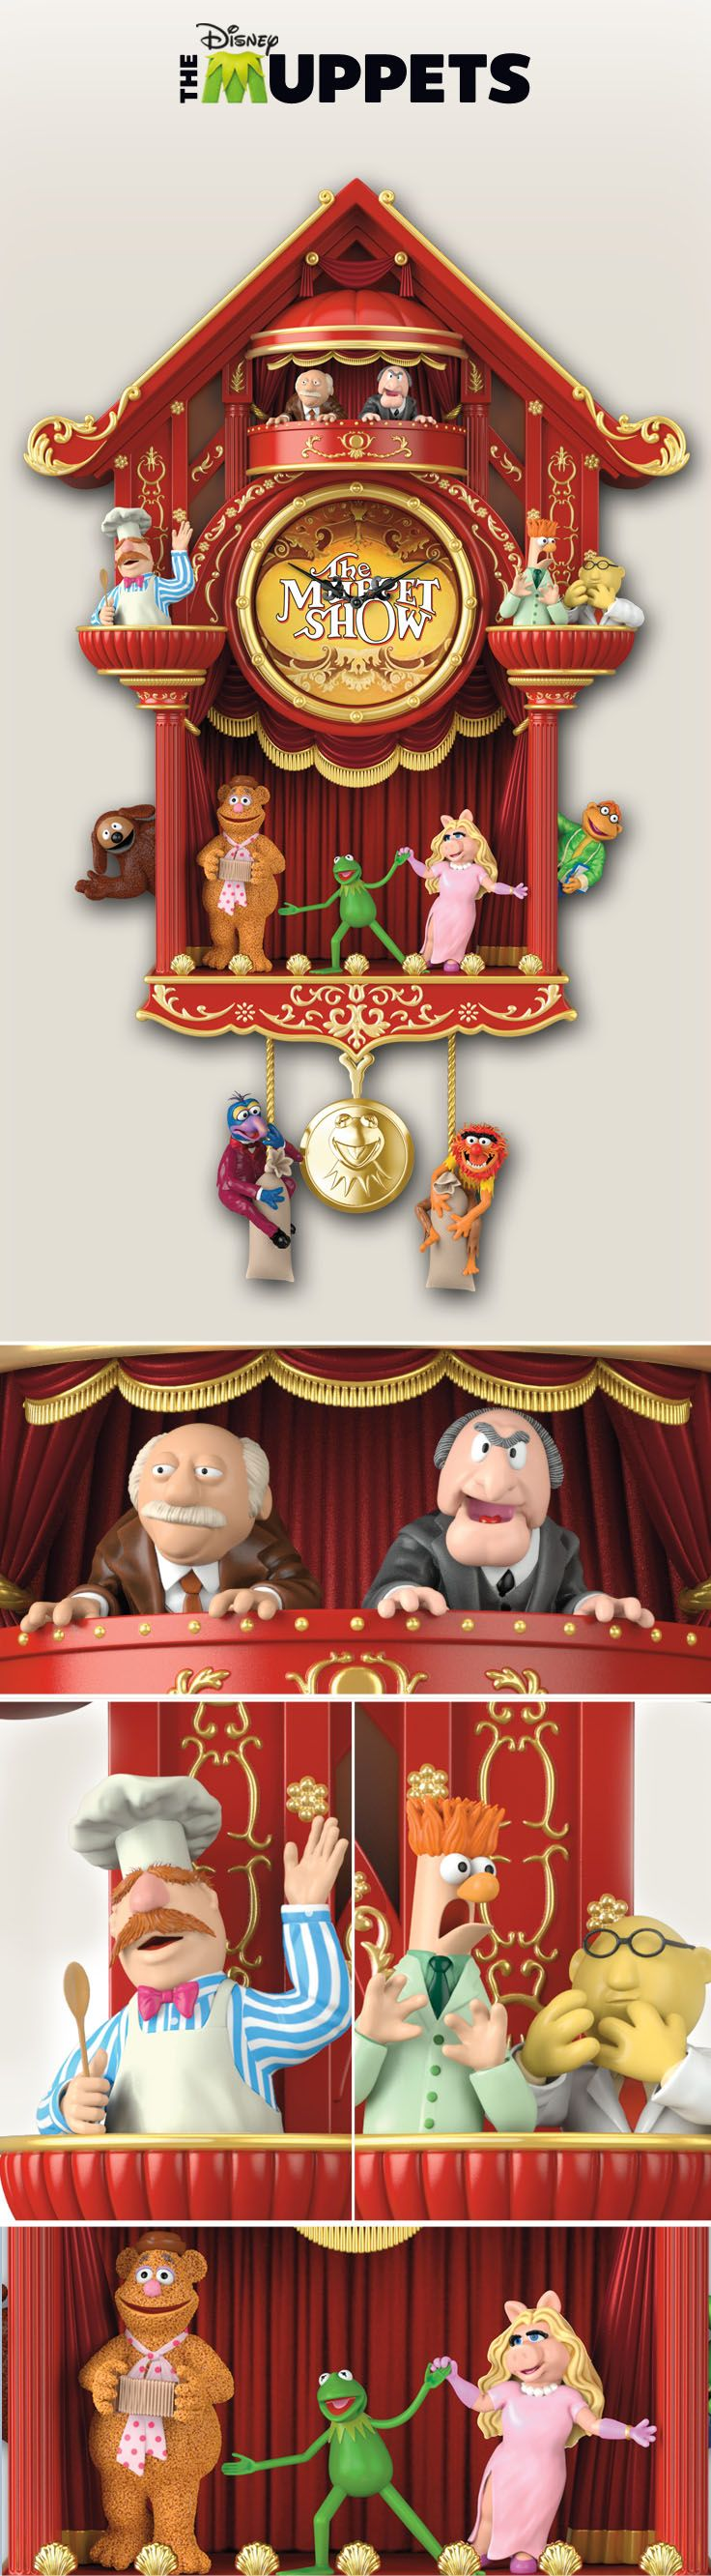 Let the Muppets bring their unique brand of entertainment and lights to every hour with The Muppet Show Cuckoo Clock. It even plays sound clips from the beloved TV show!